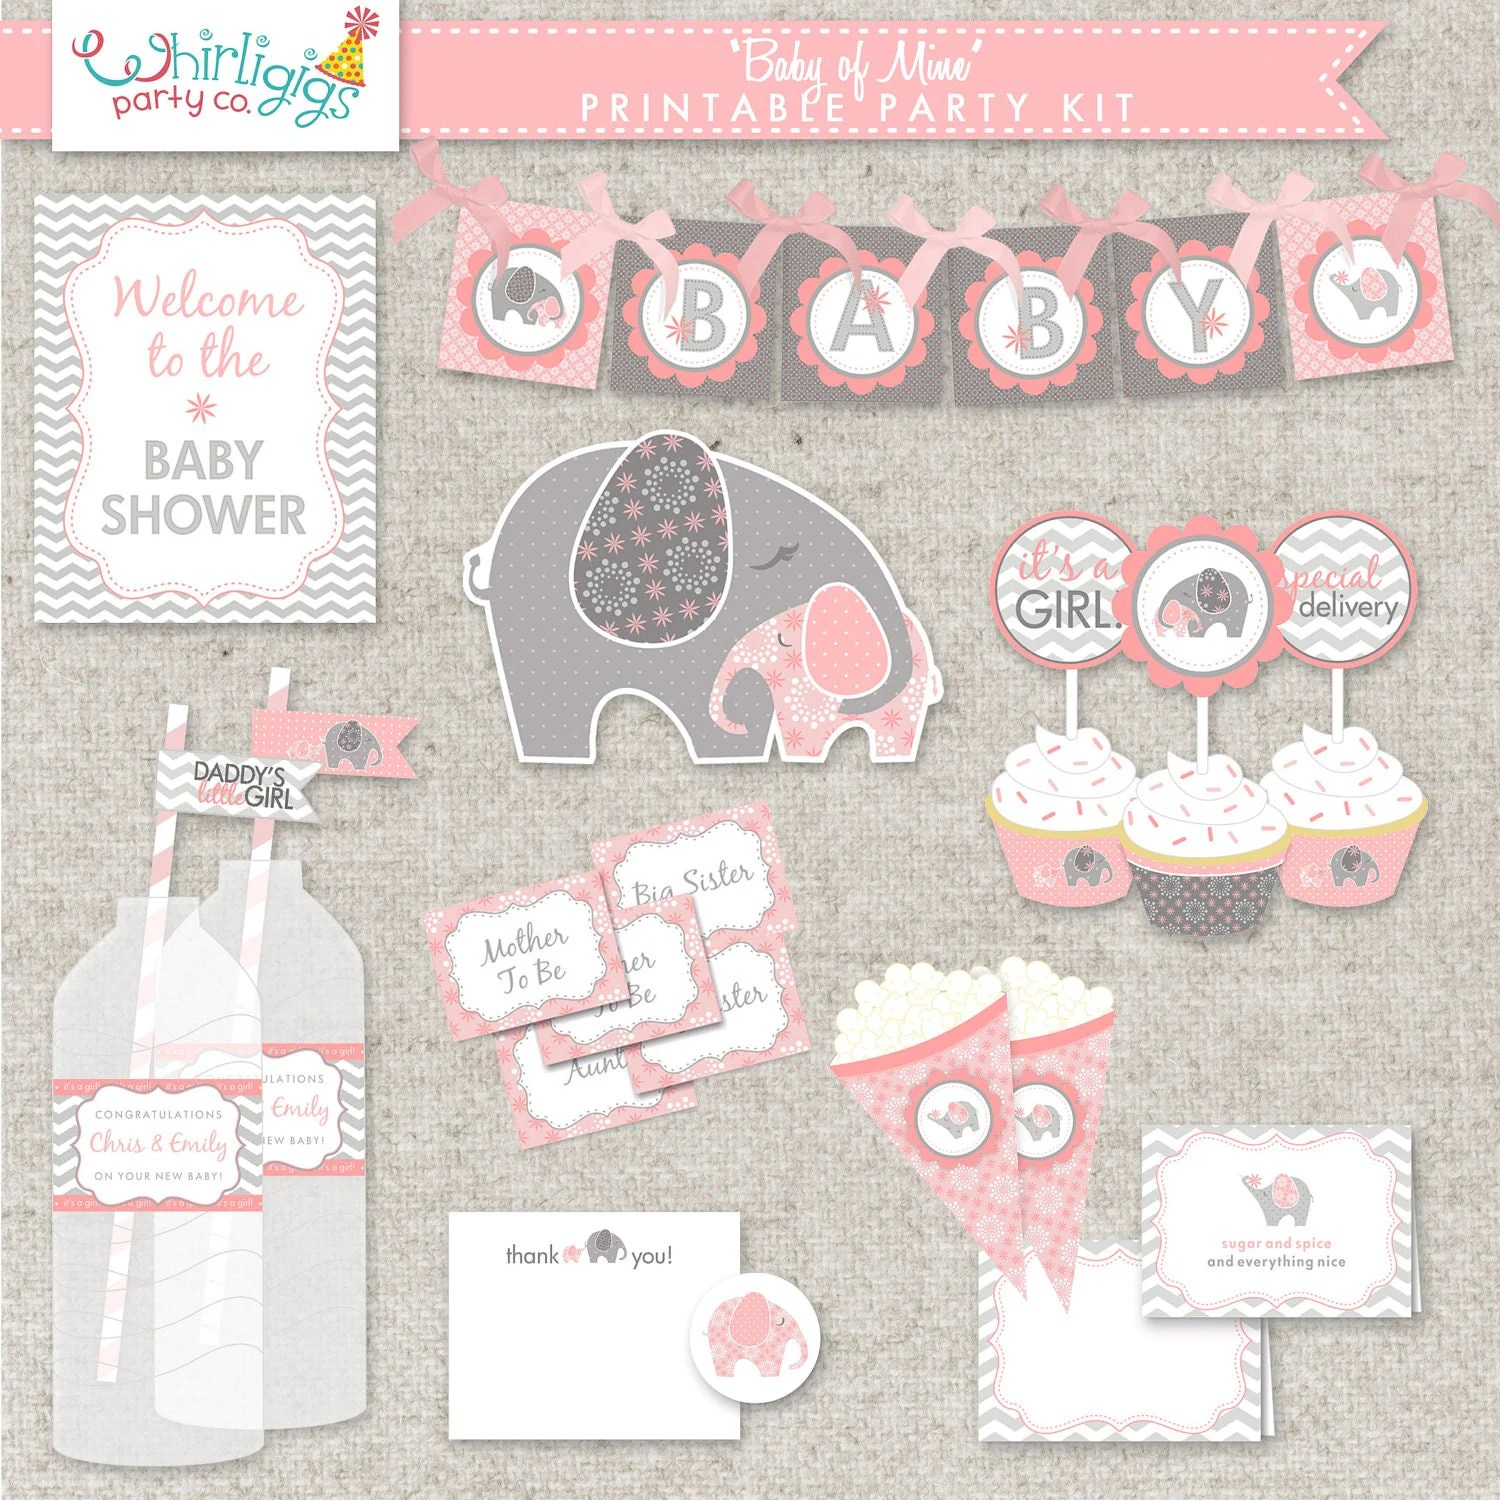 Diy Elephant Baby Shower Printable Party By Whirligigspartyco